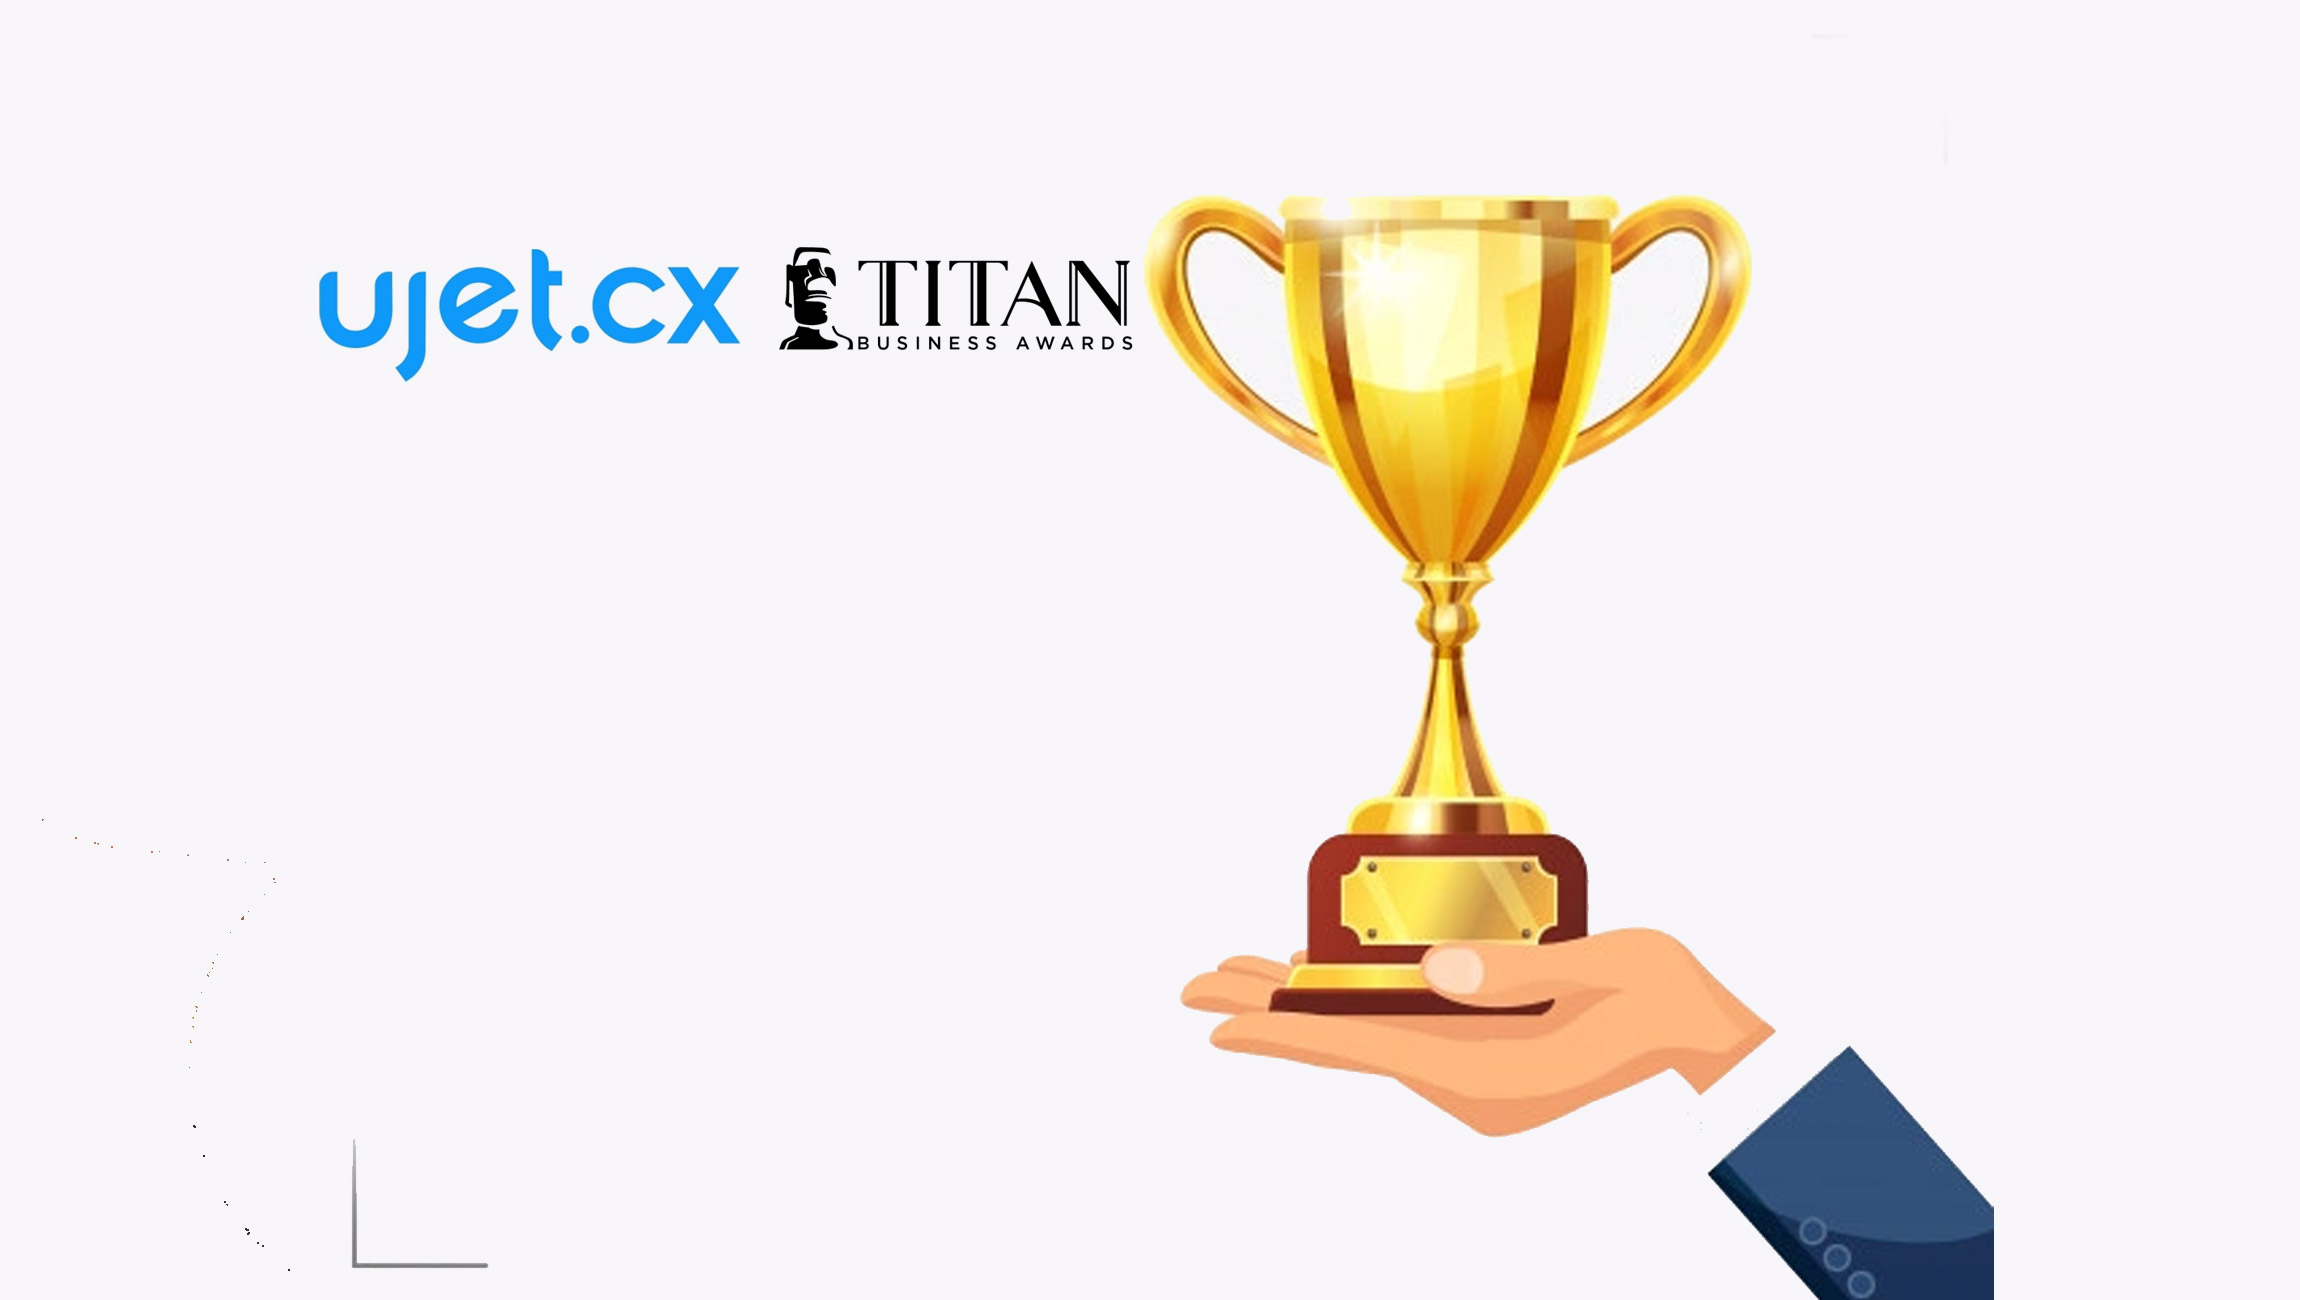 UJET-Walks-Away-Victorious-in-the-2021-TITAN-Business-Awards'-Second-Season